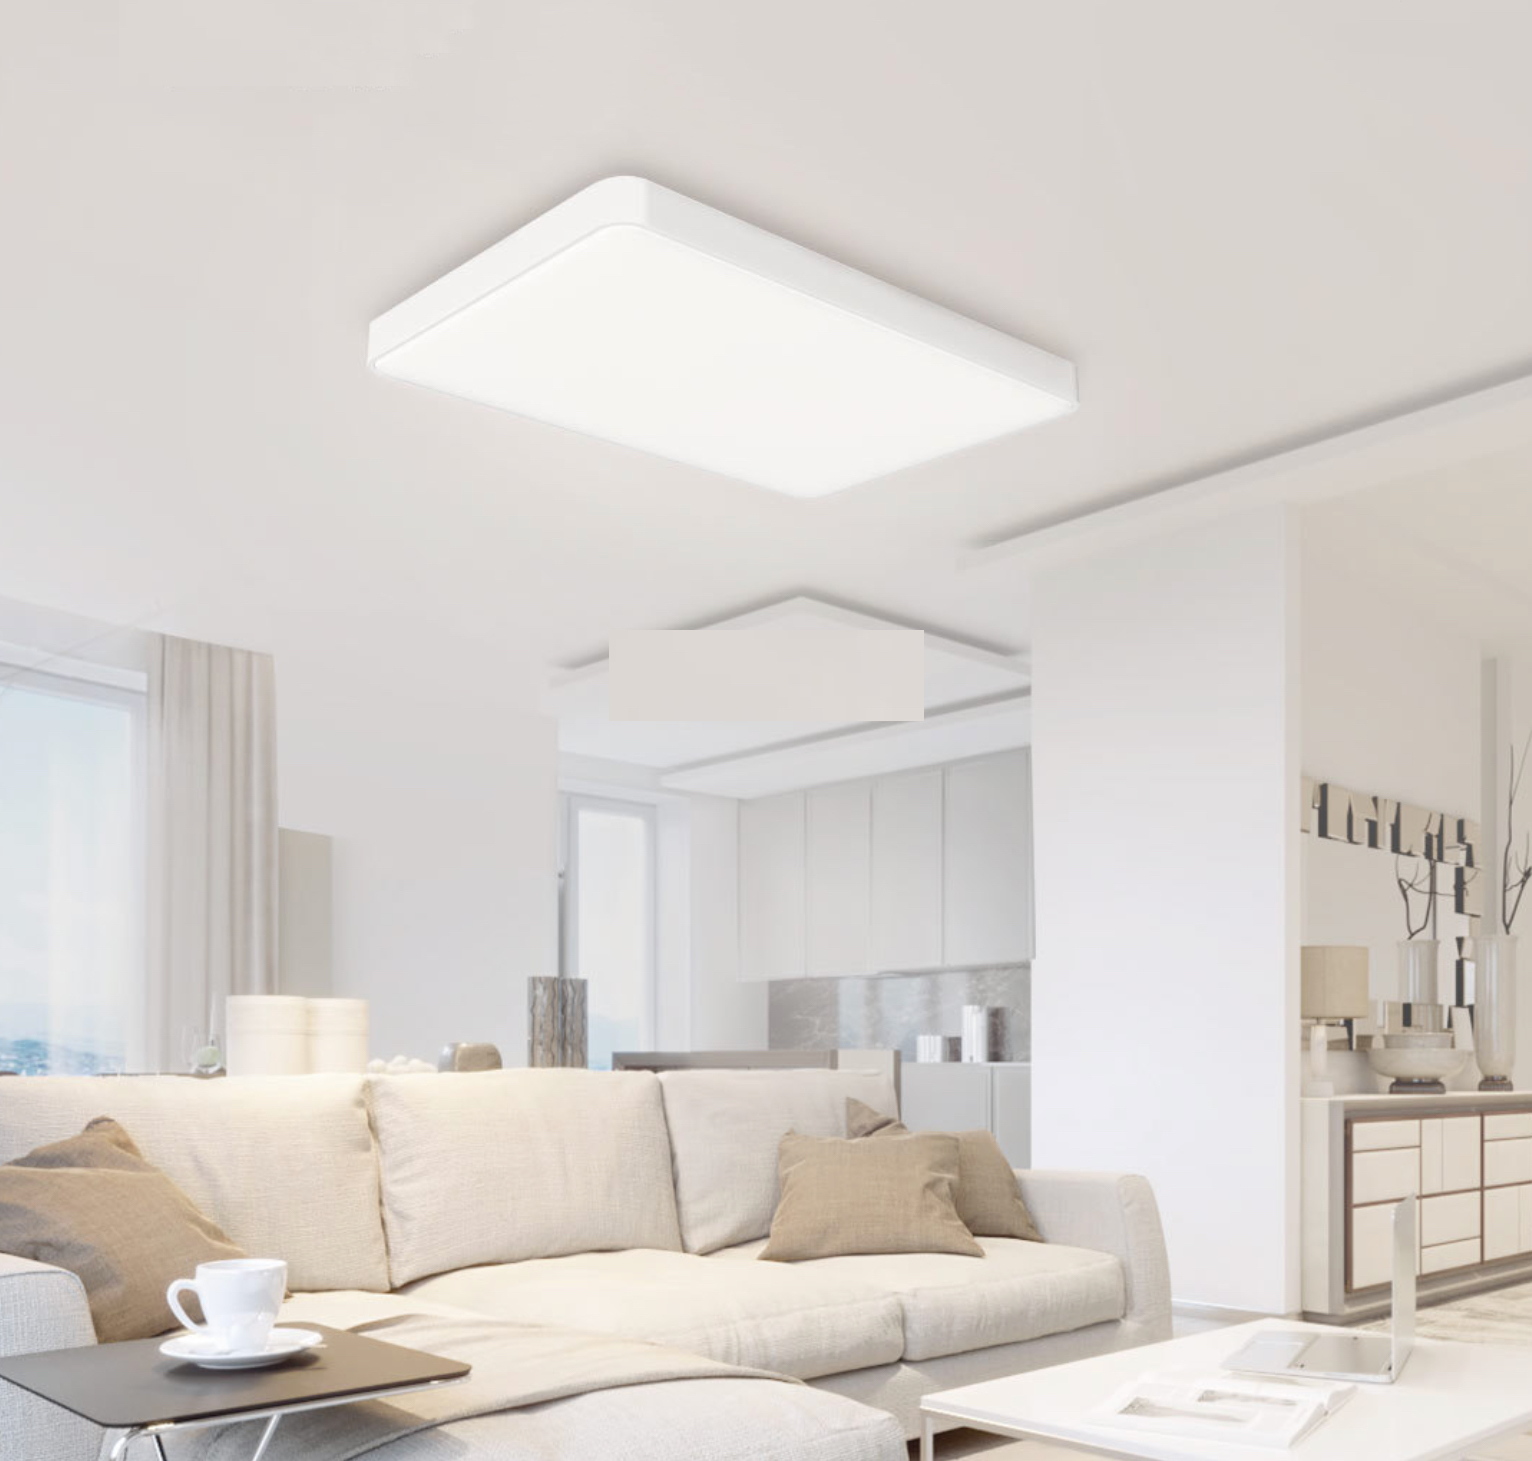 Yeelight LED Ceiling Lamp Pro